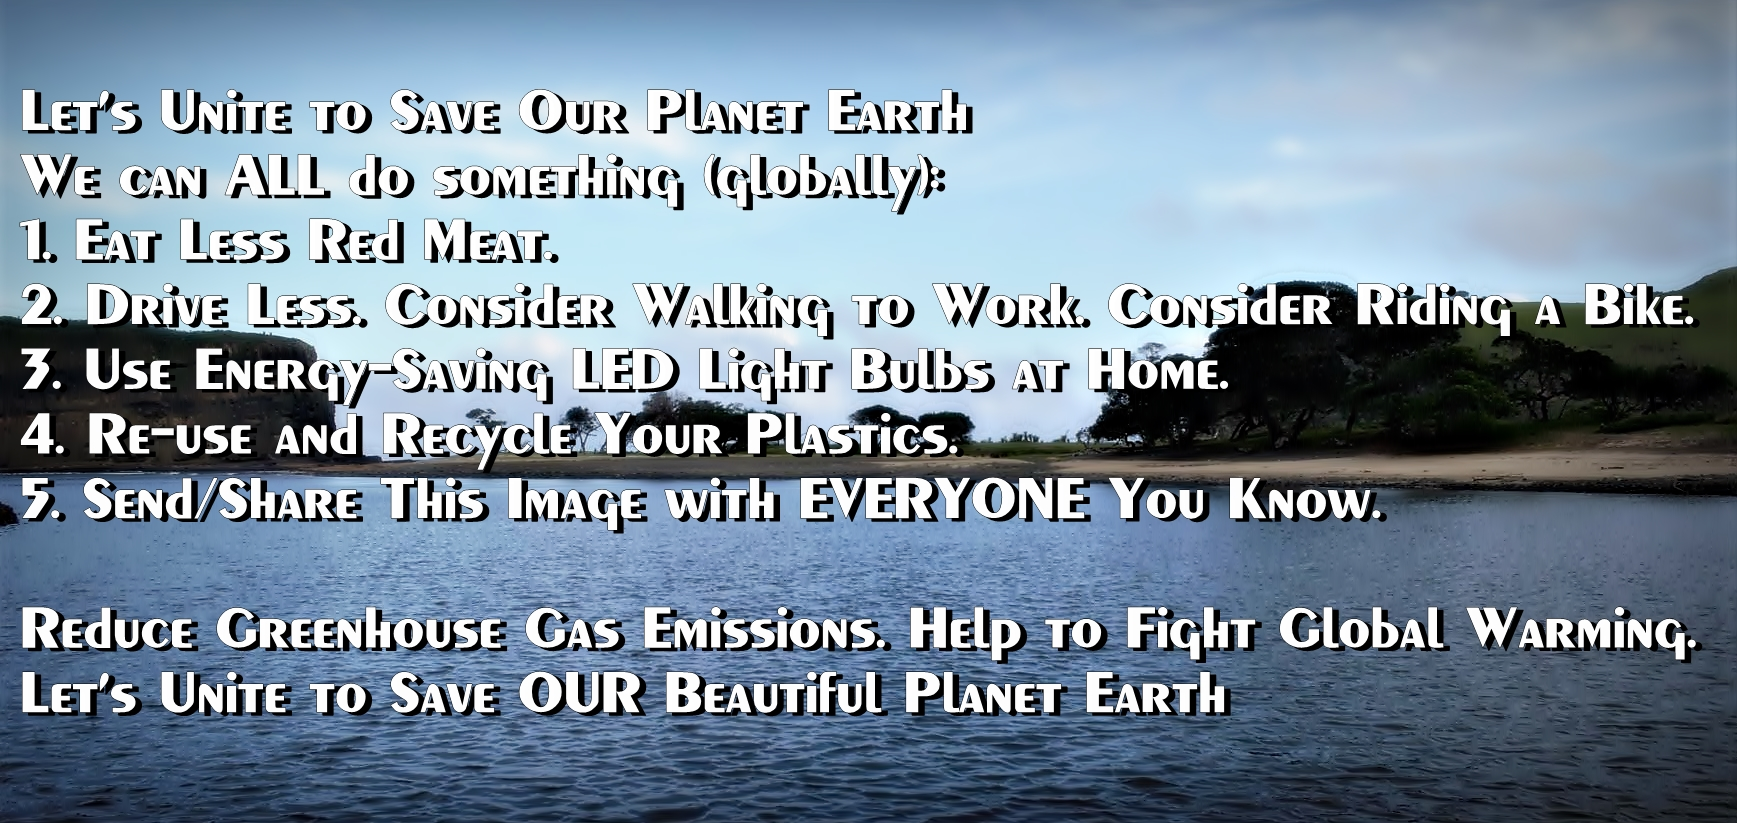 Reduce Greenhouse Gas Emissions